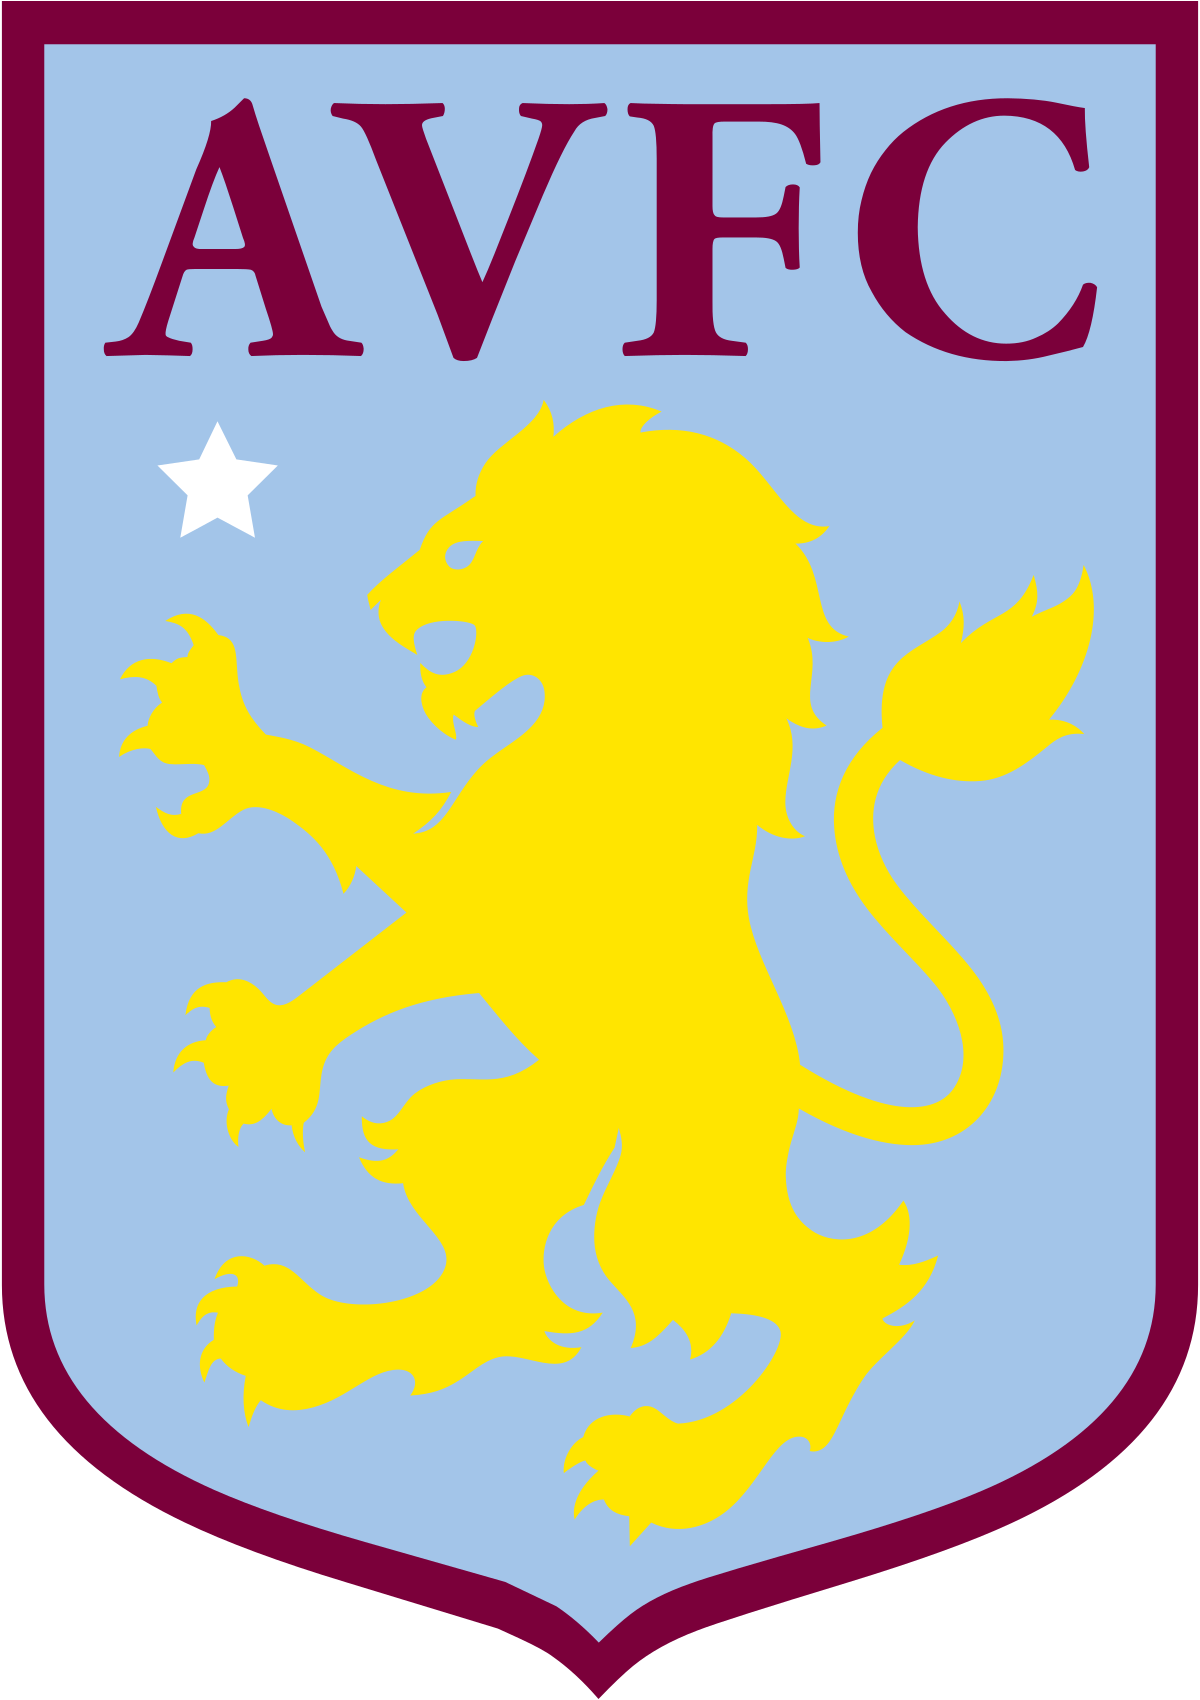 Pin on Aston Villa Football Club